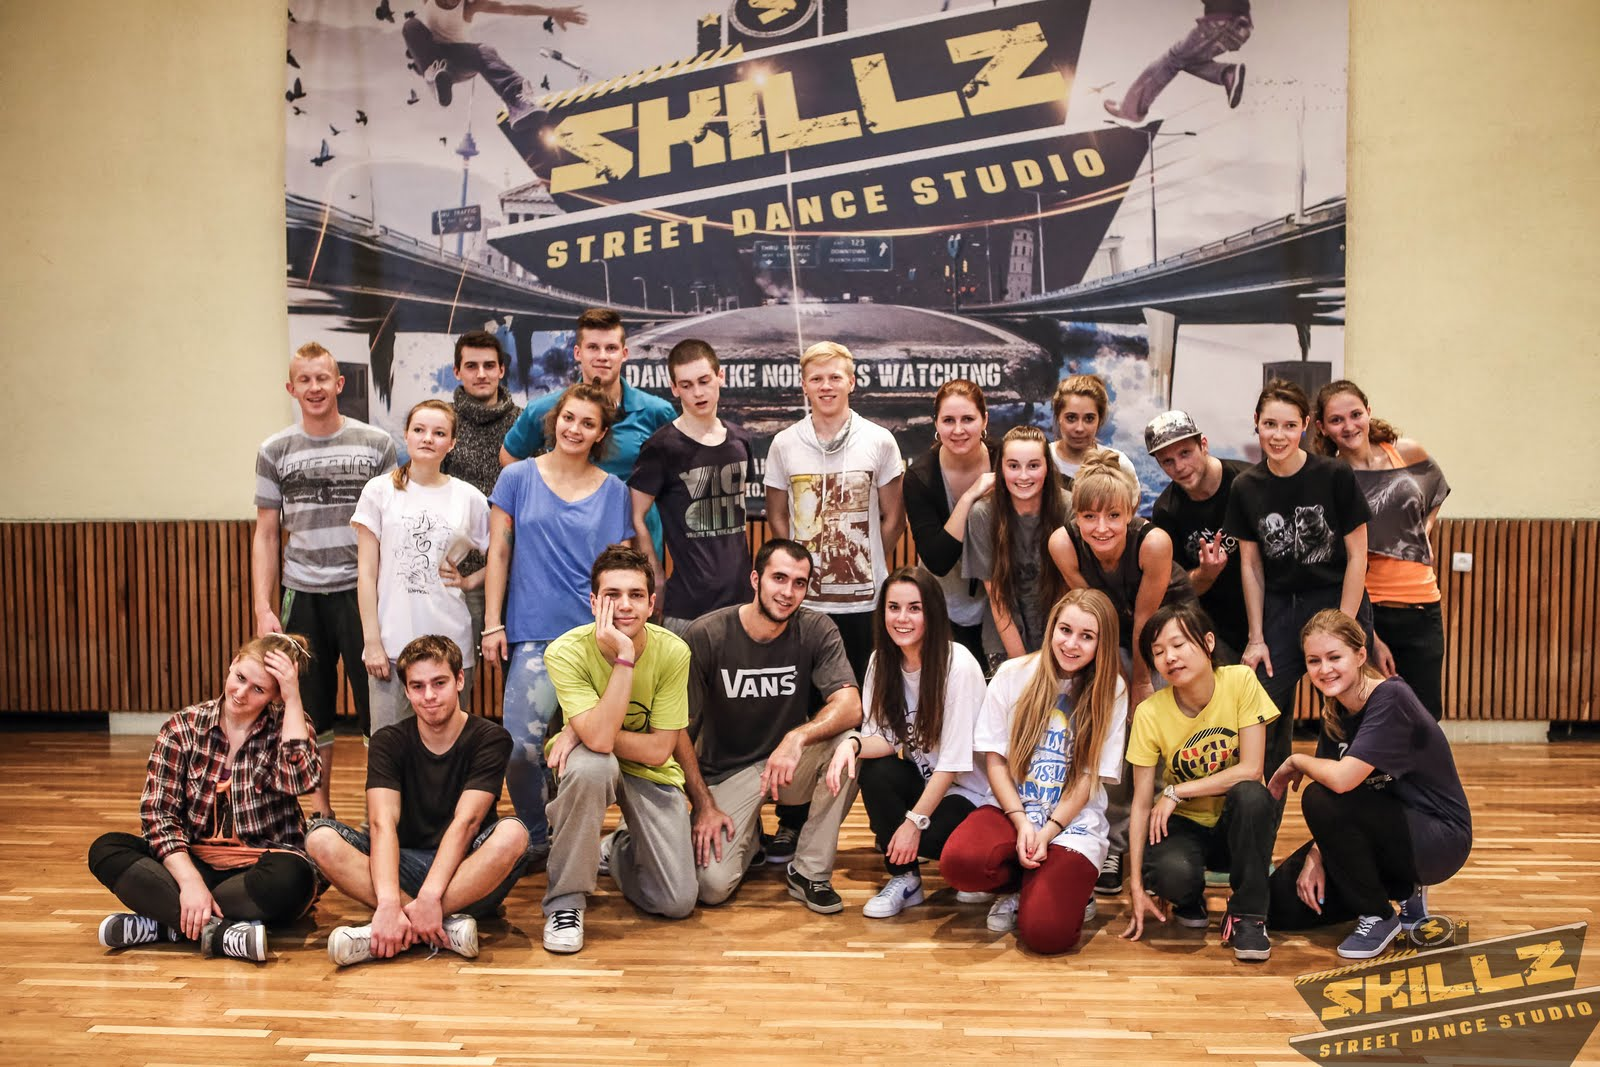 Workshop with Kusch (Russia) - IMG_4878.jpg